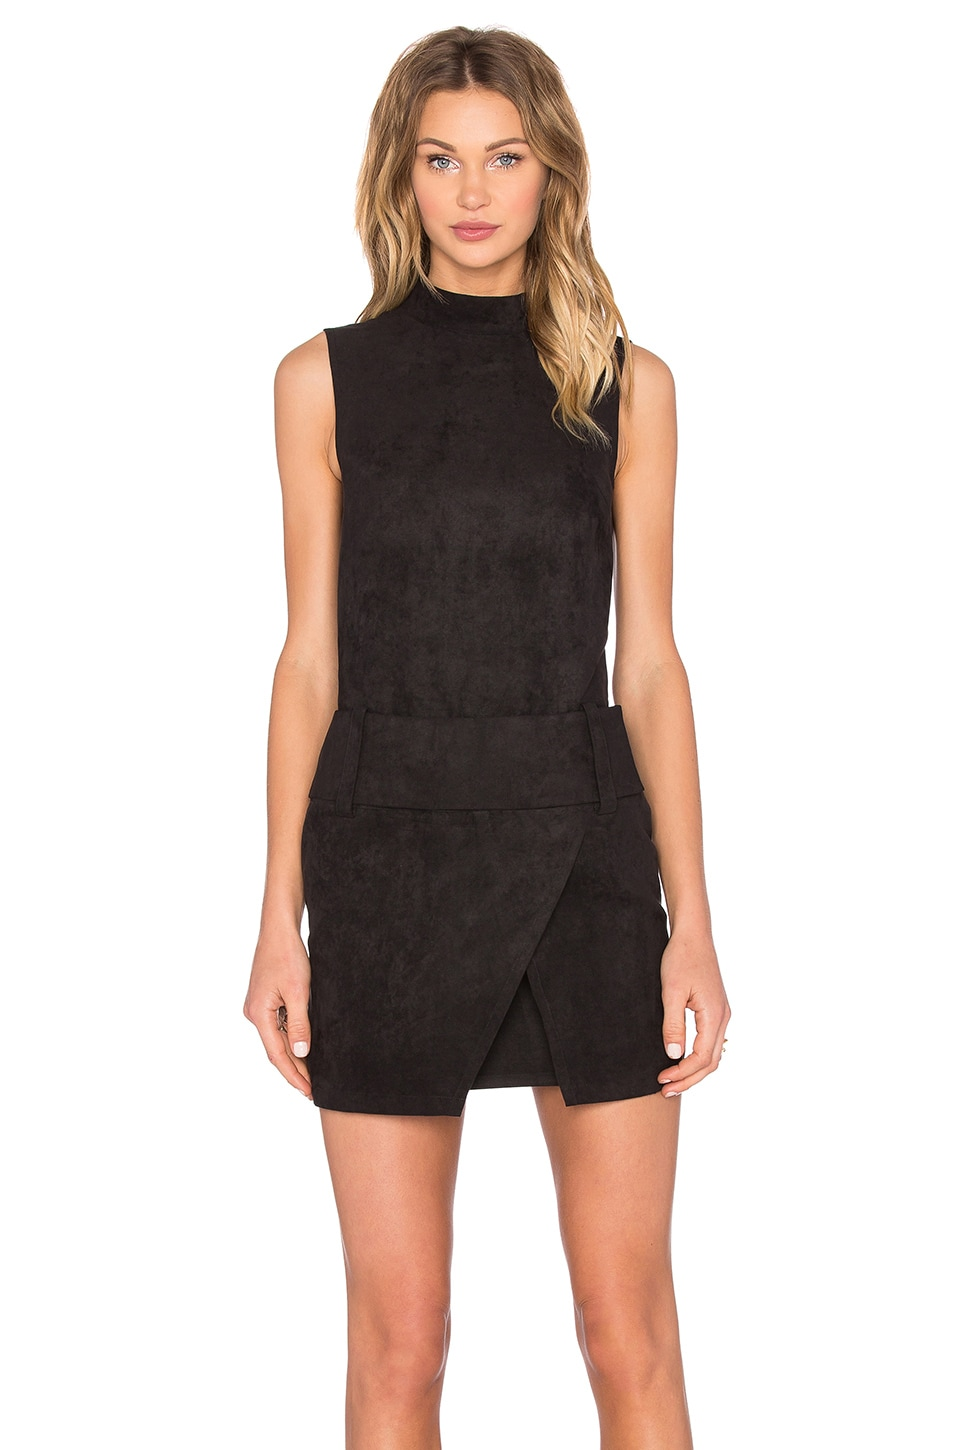 Drop Waist Mini Dress by Shades of Grey by Micah Cohen